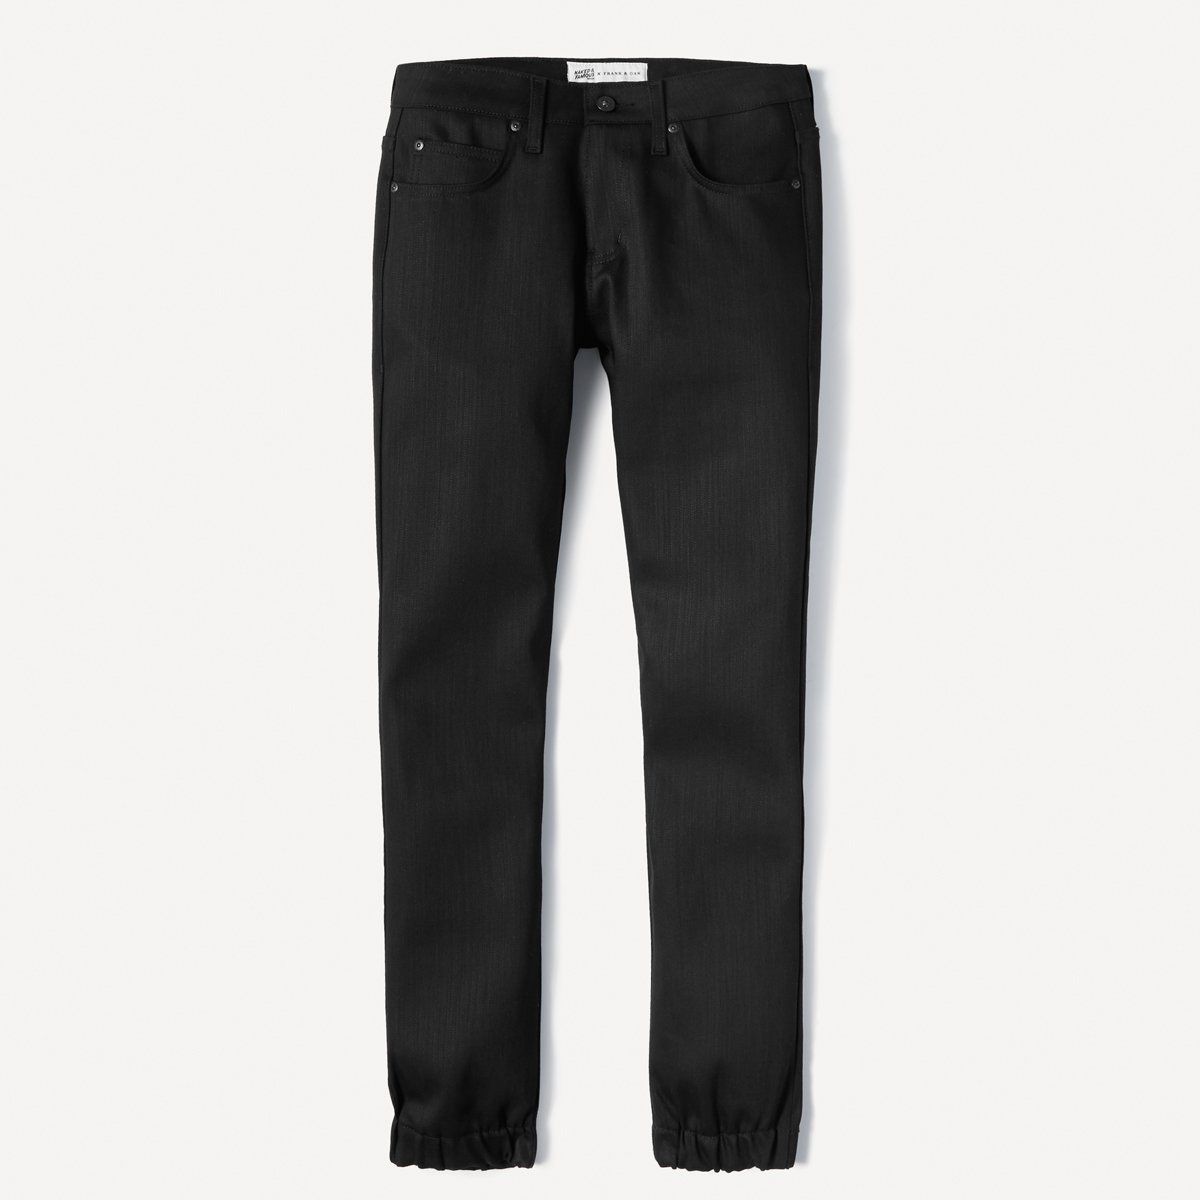 Naked & Famous x Frank & Oak Selvedge Denim Jogger in Black